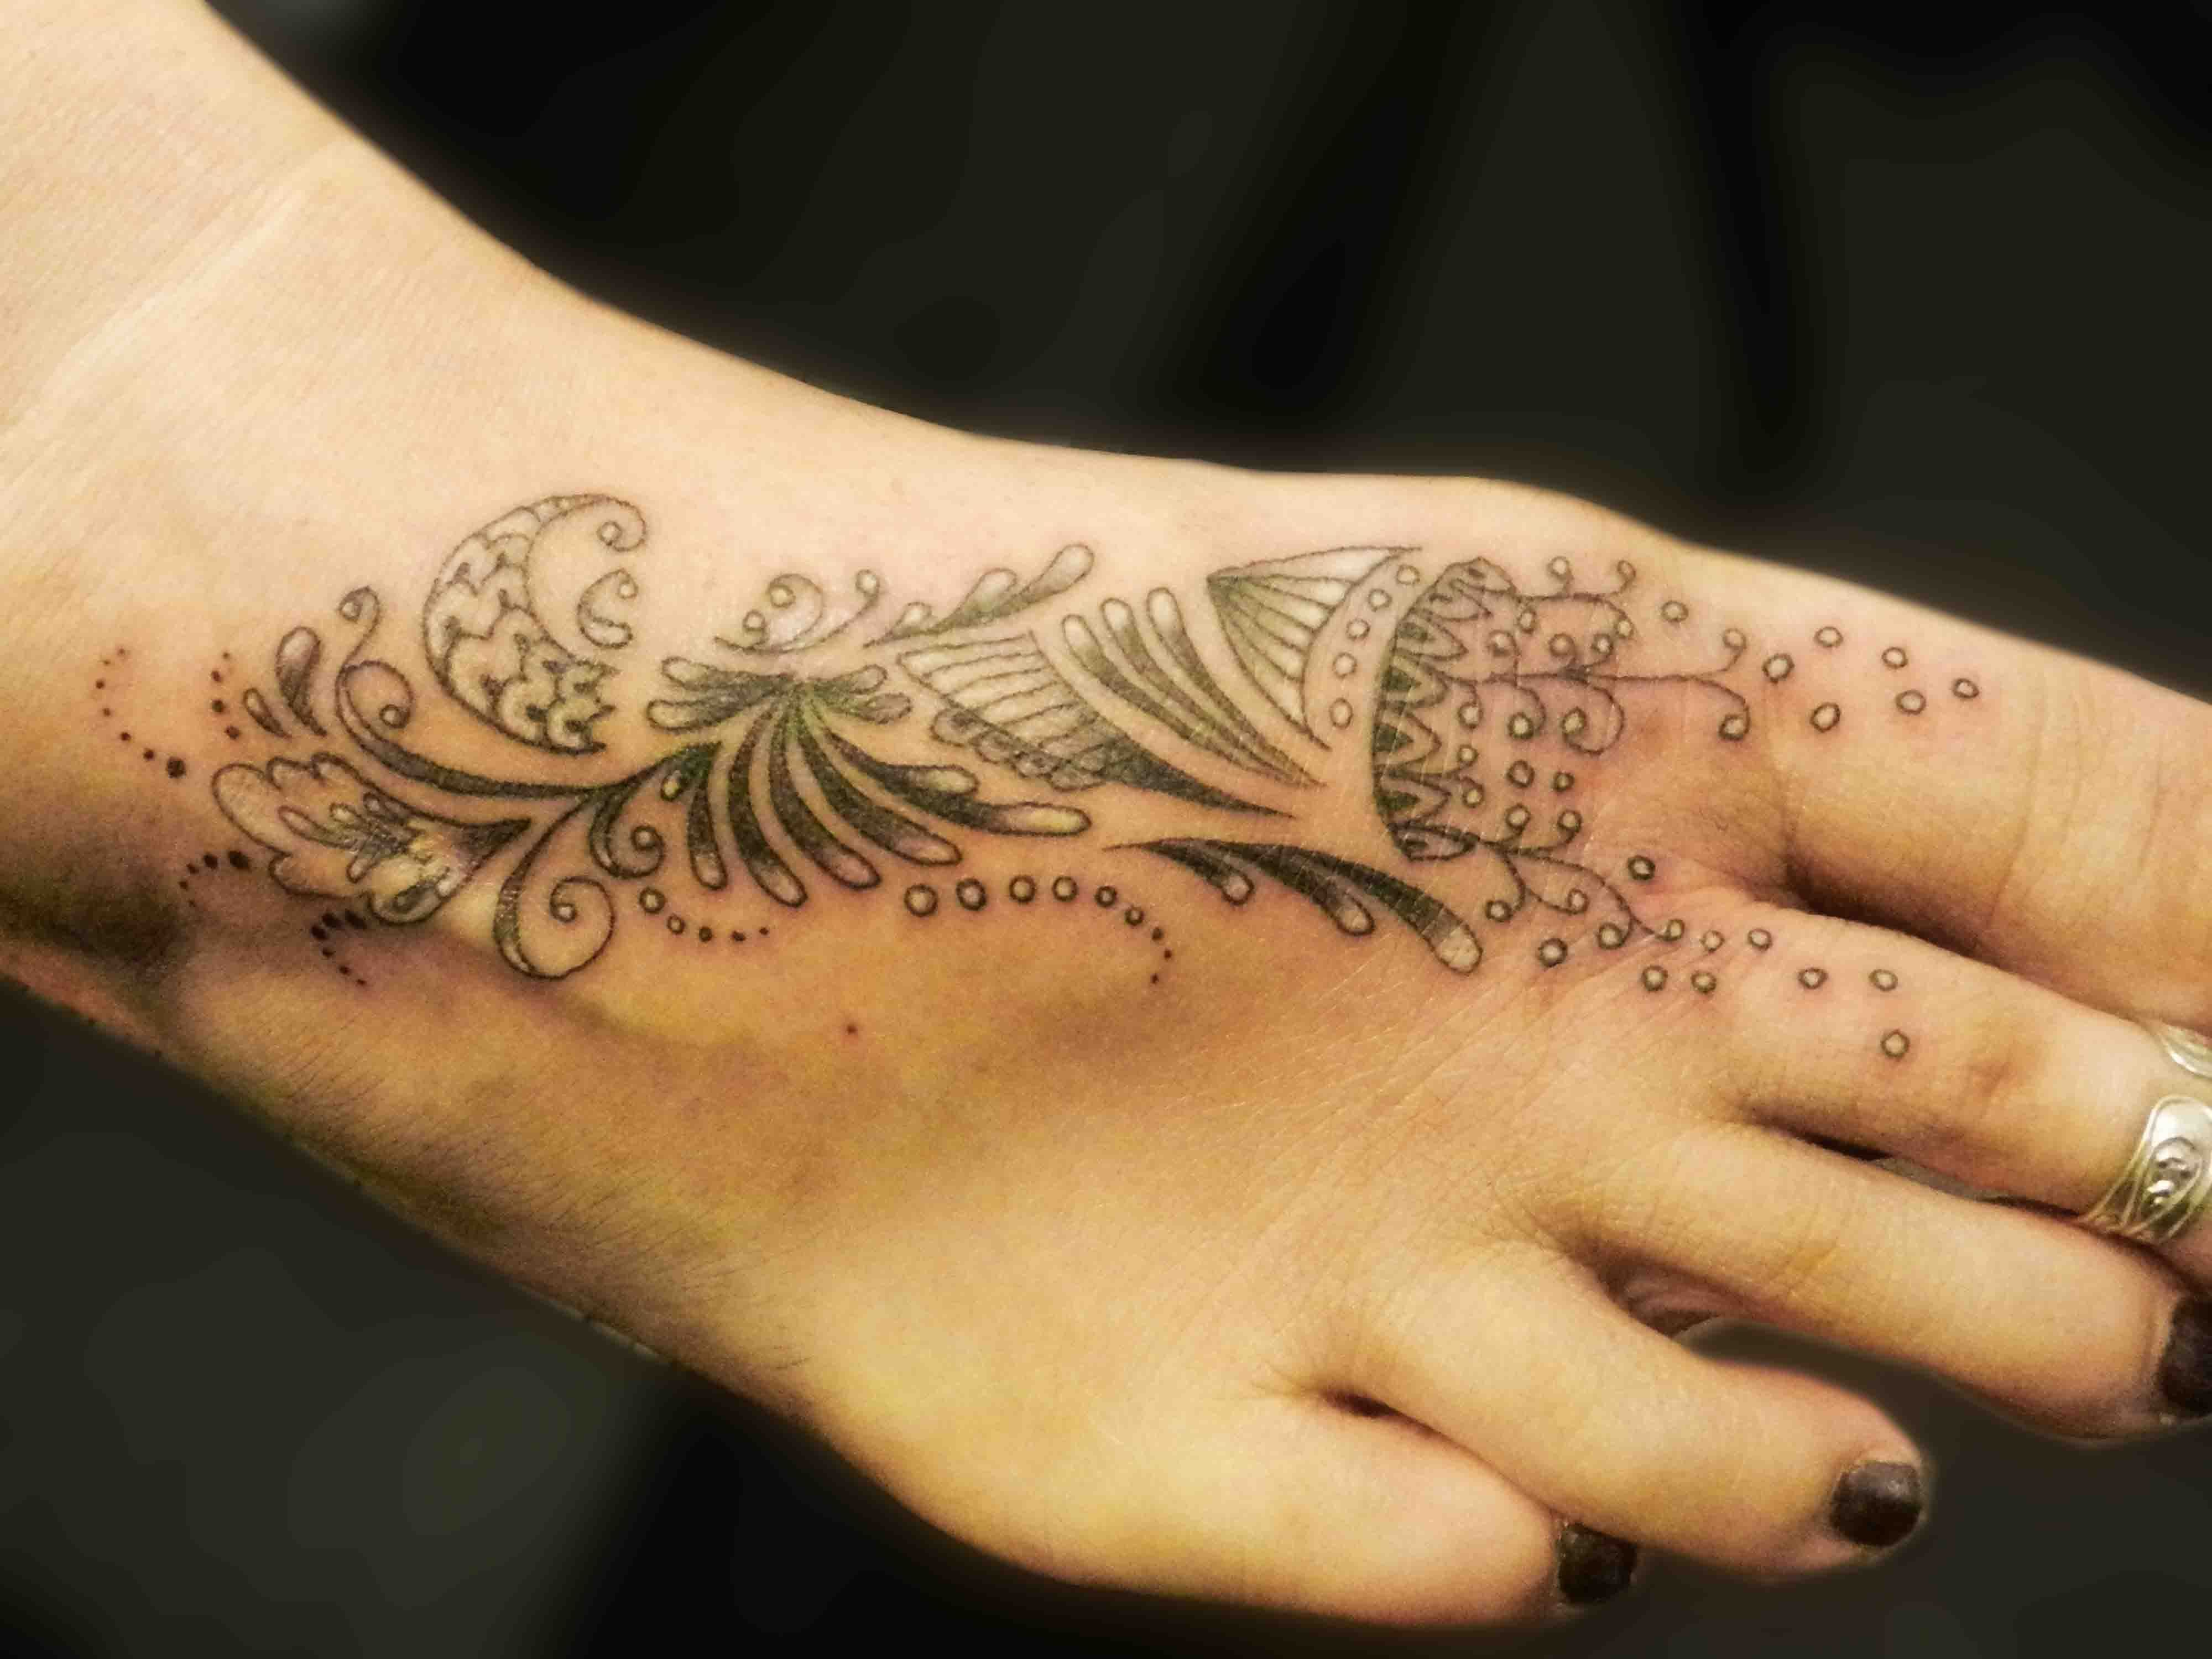 Foot Tattoo | Tattoo Ideas and cool art | Foot tattoos ...